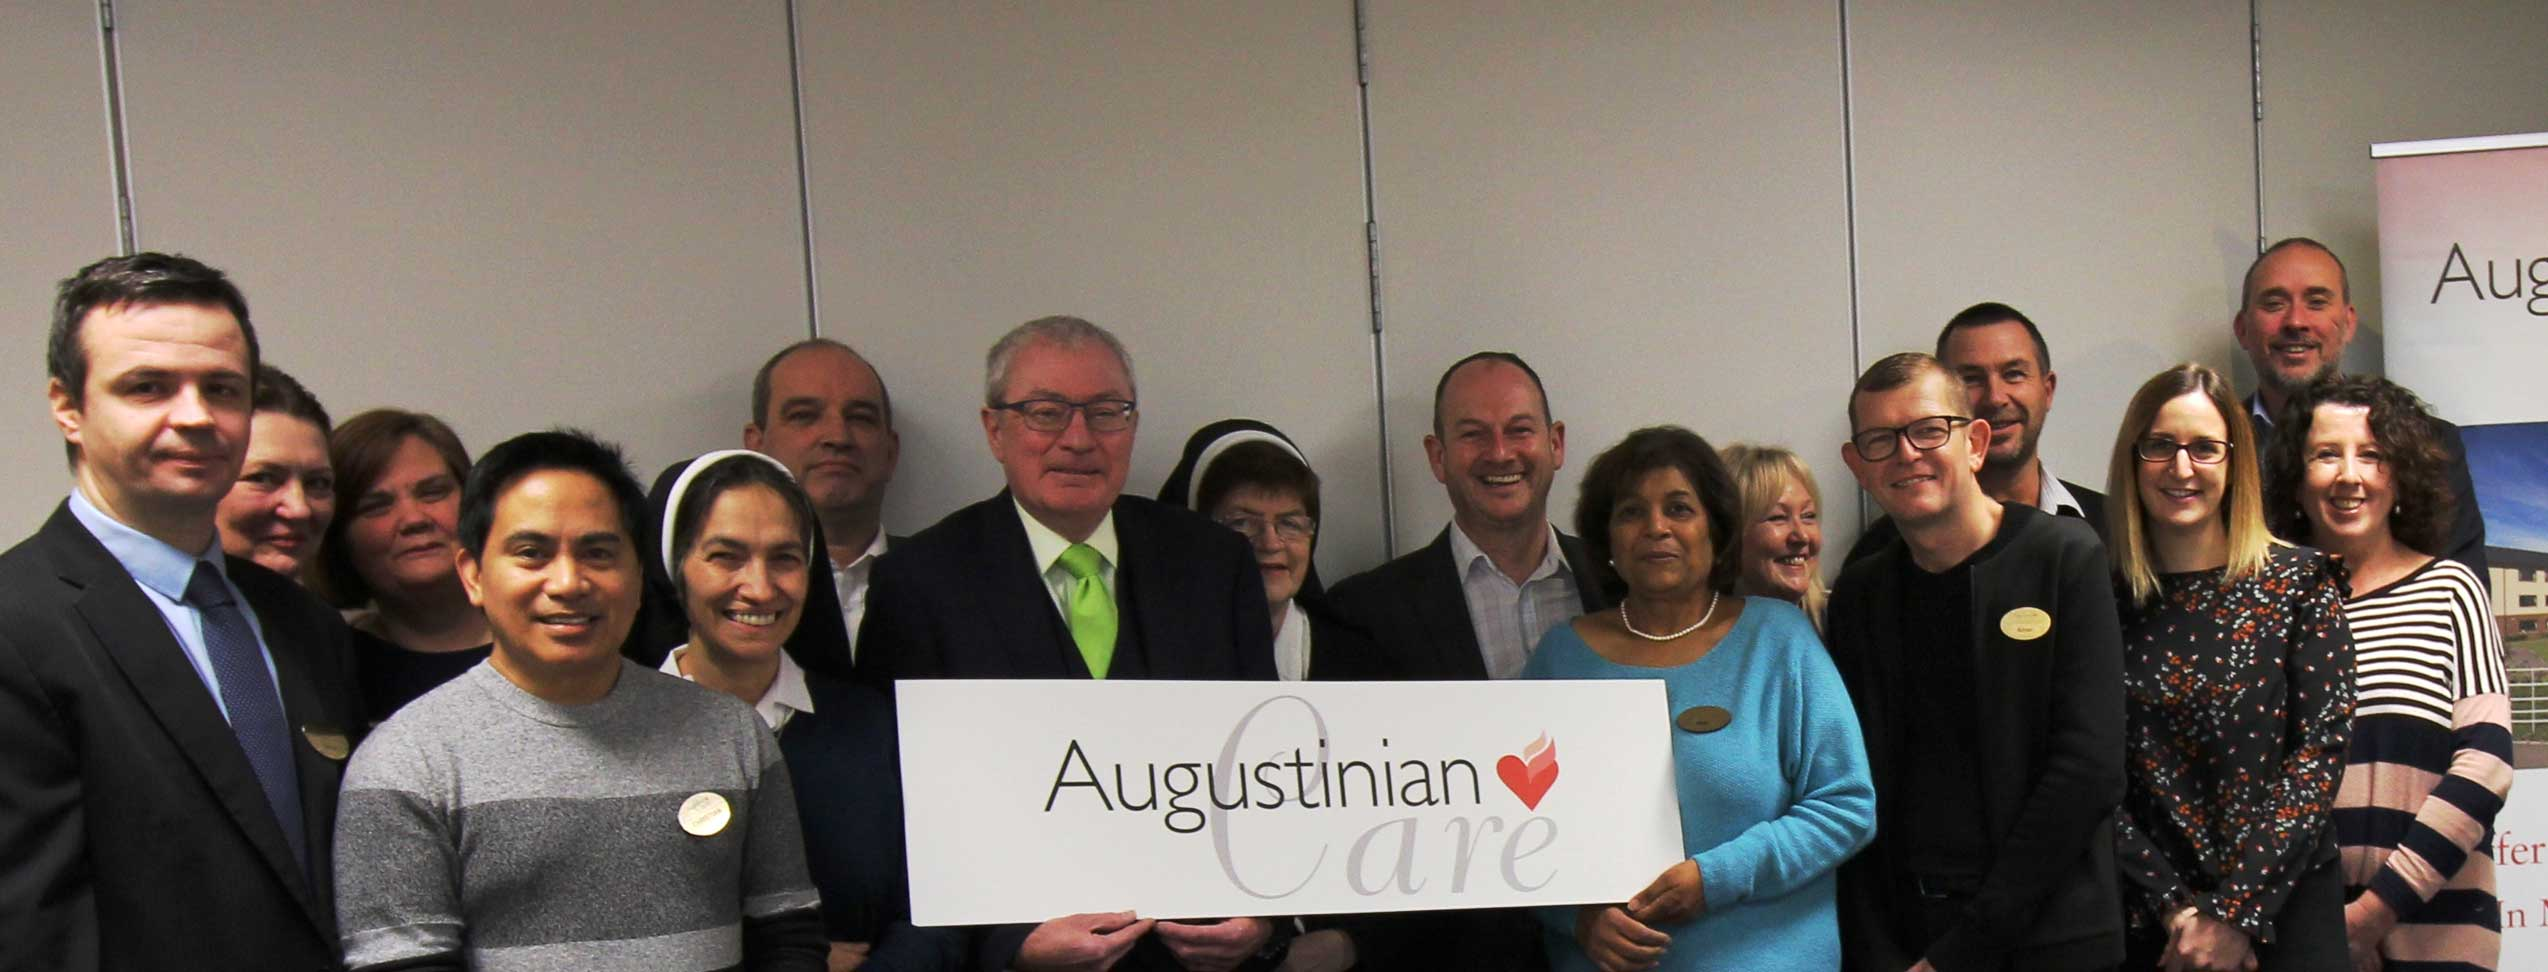 Augustinian Care - Augustinian job opportunities